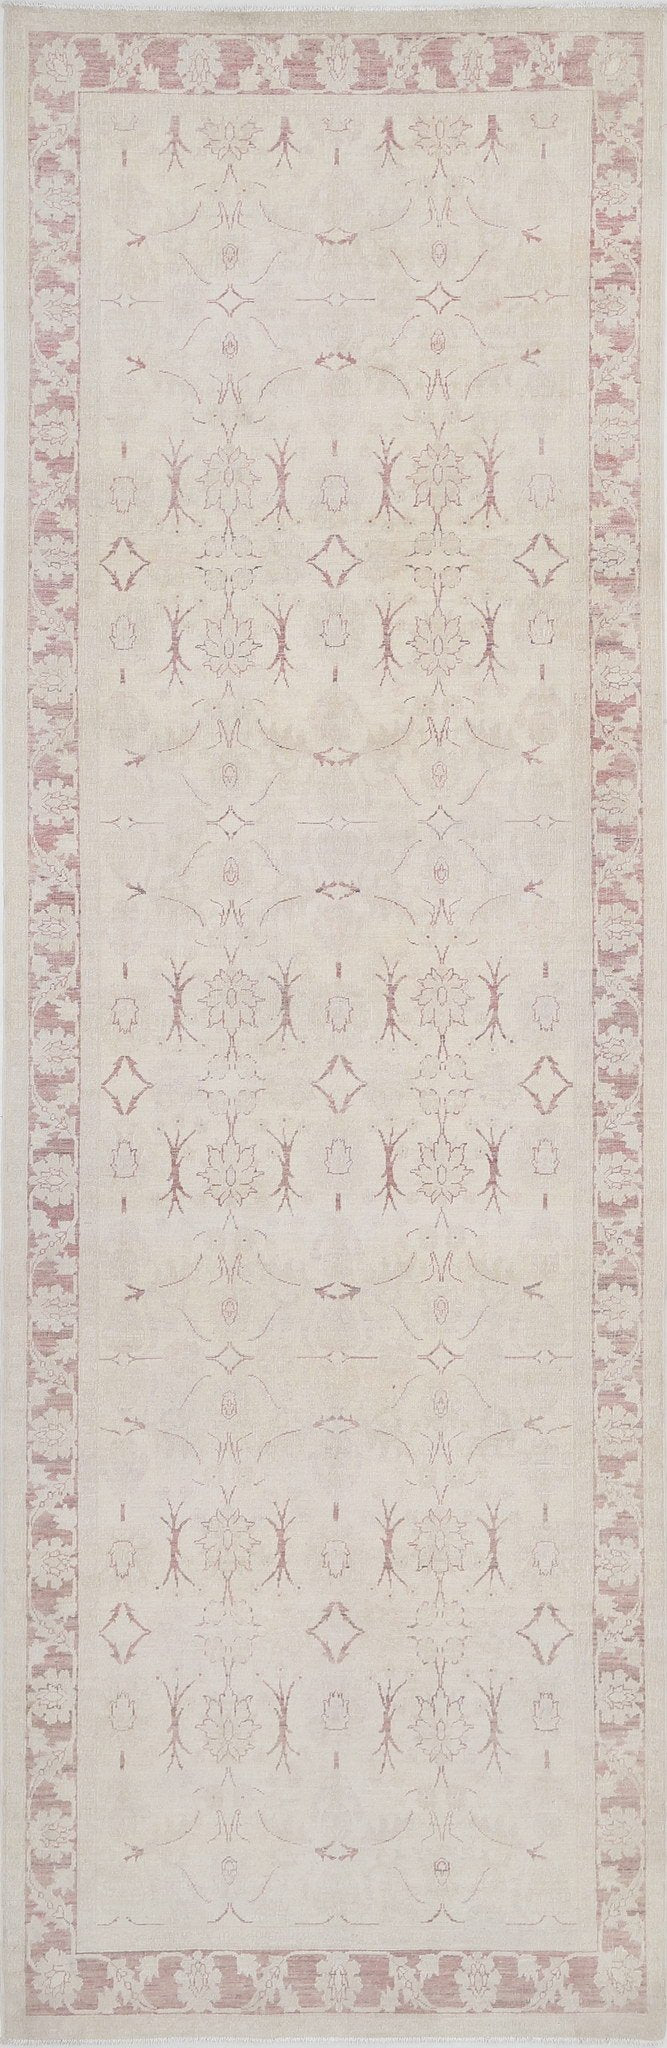 Handmade Traditional Rug by Carpet Culture. Tabriz Rugs